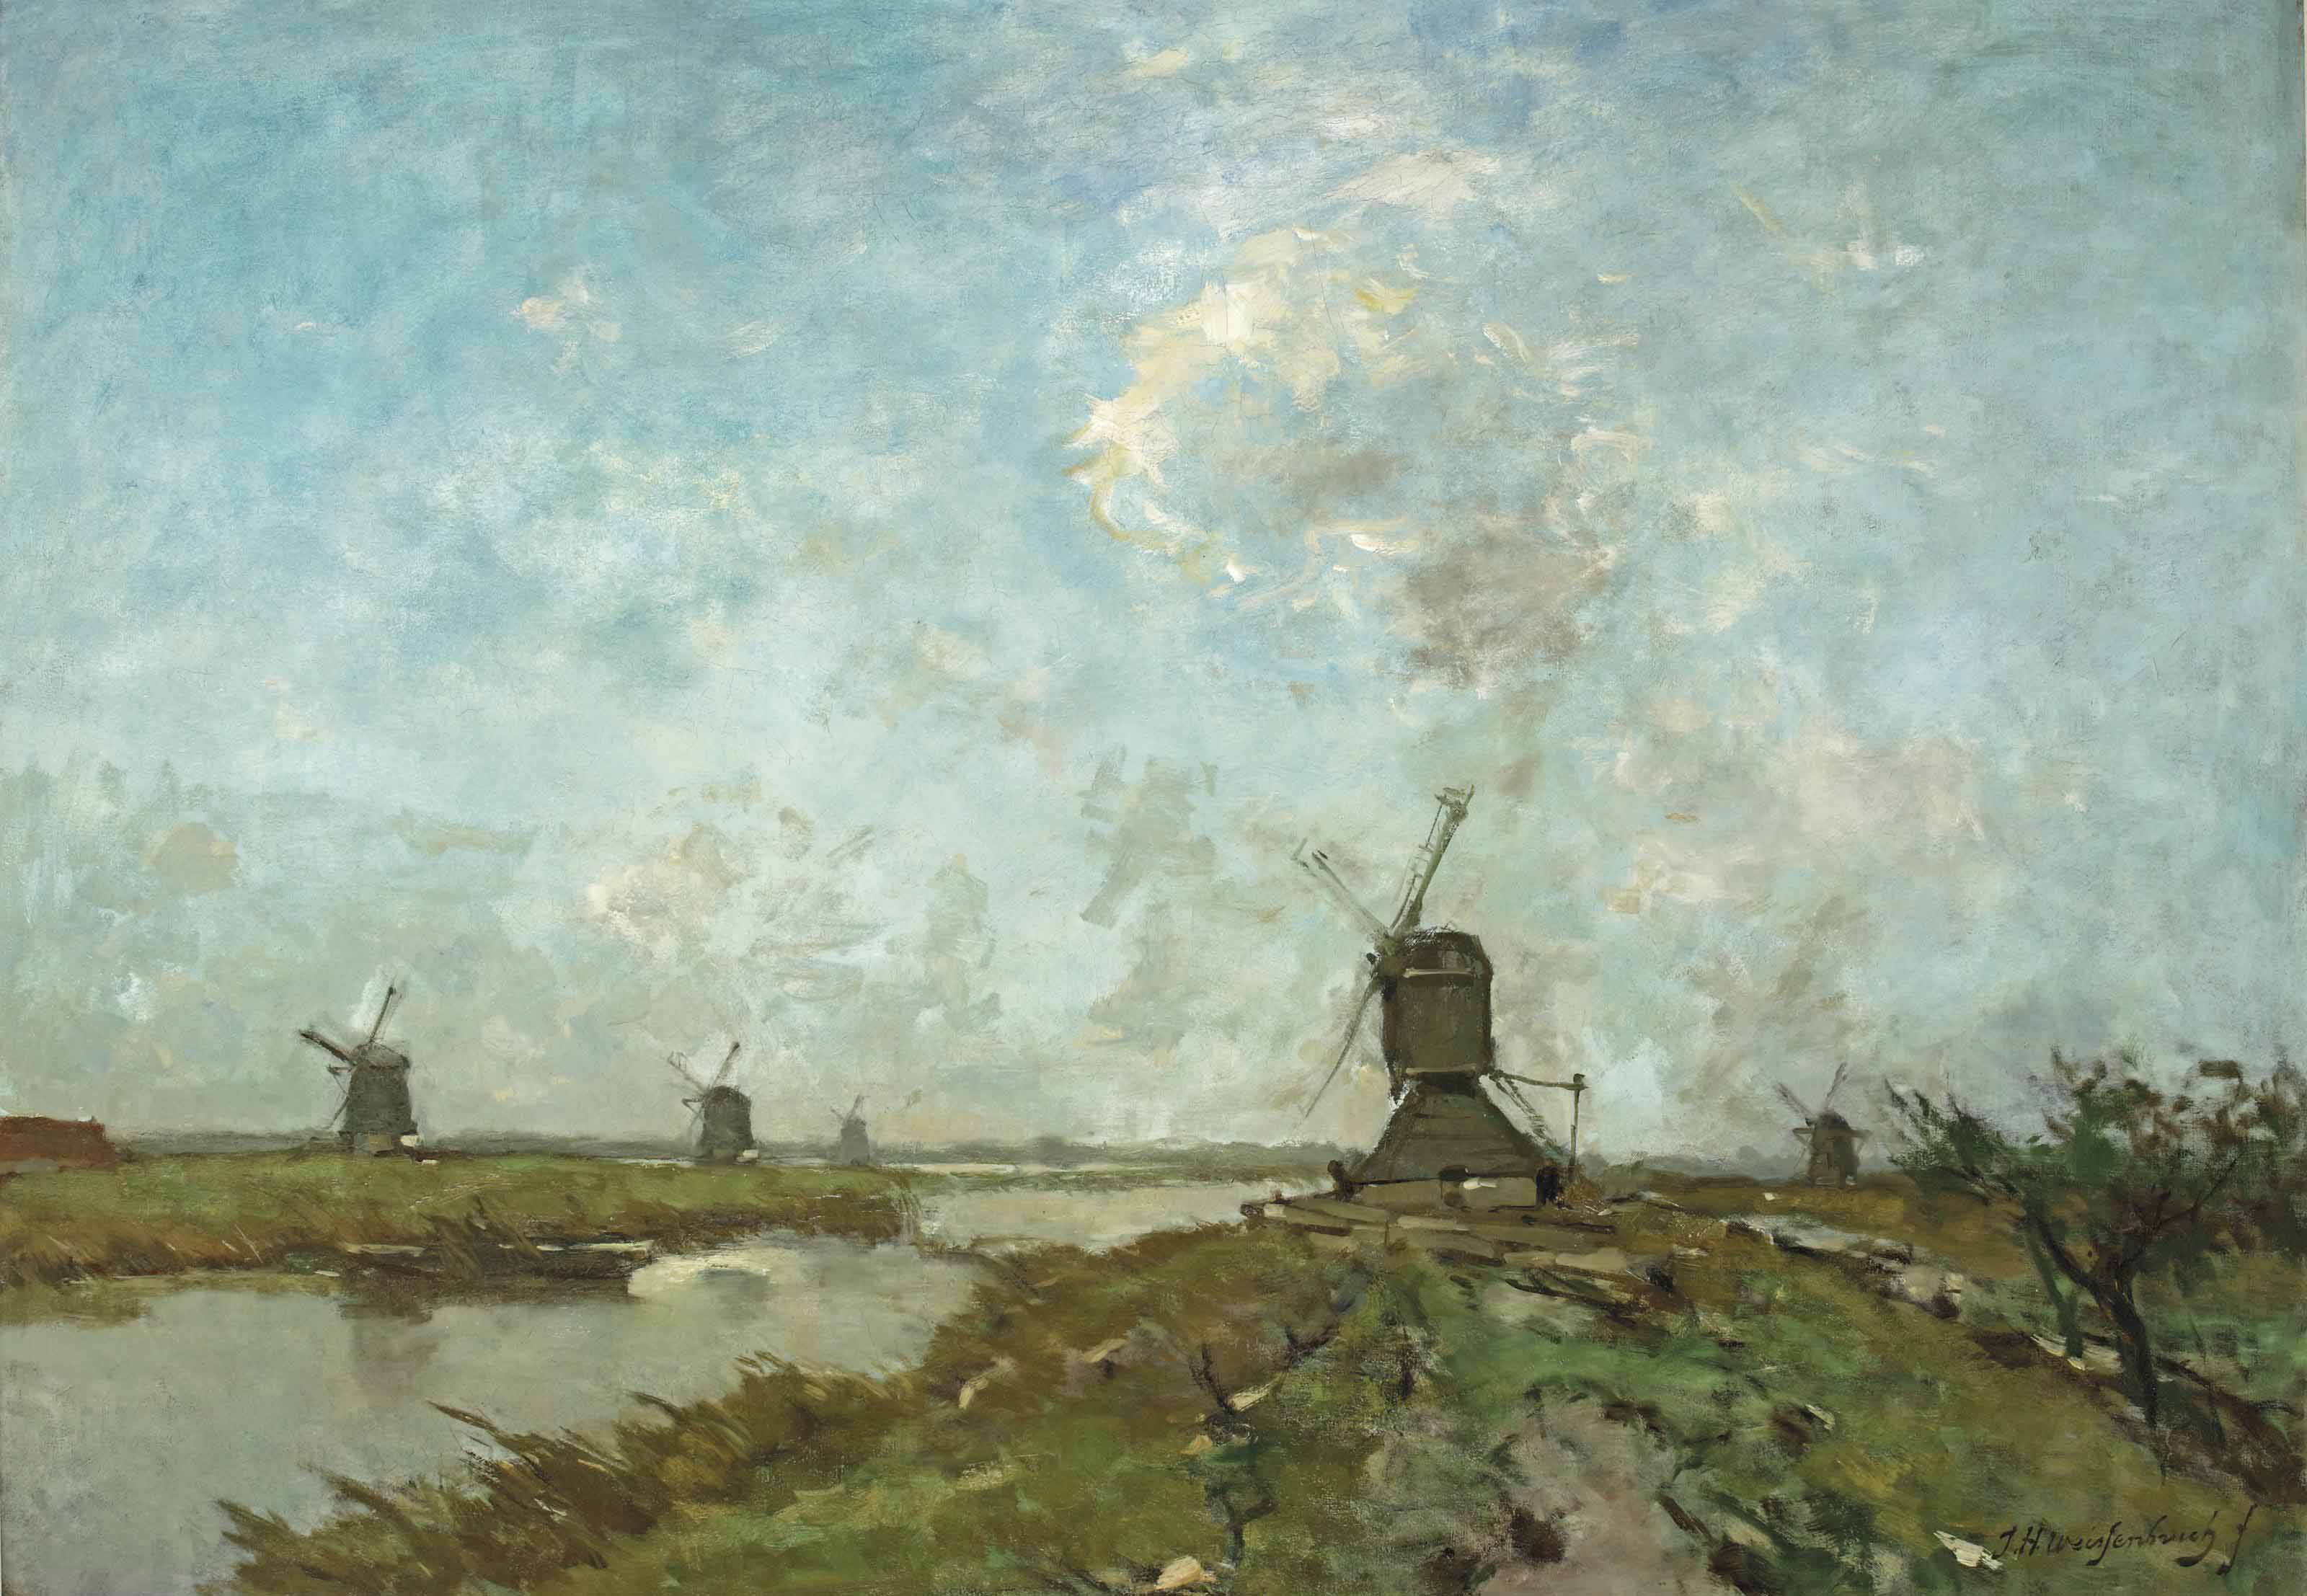 A extensive polder landscape with windmills